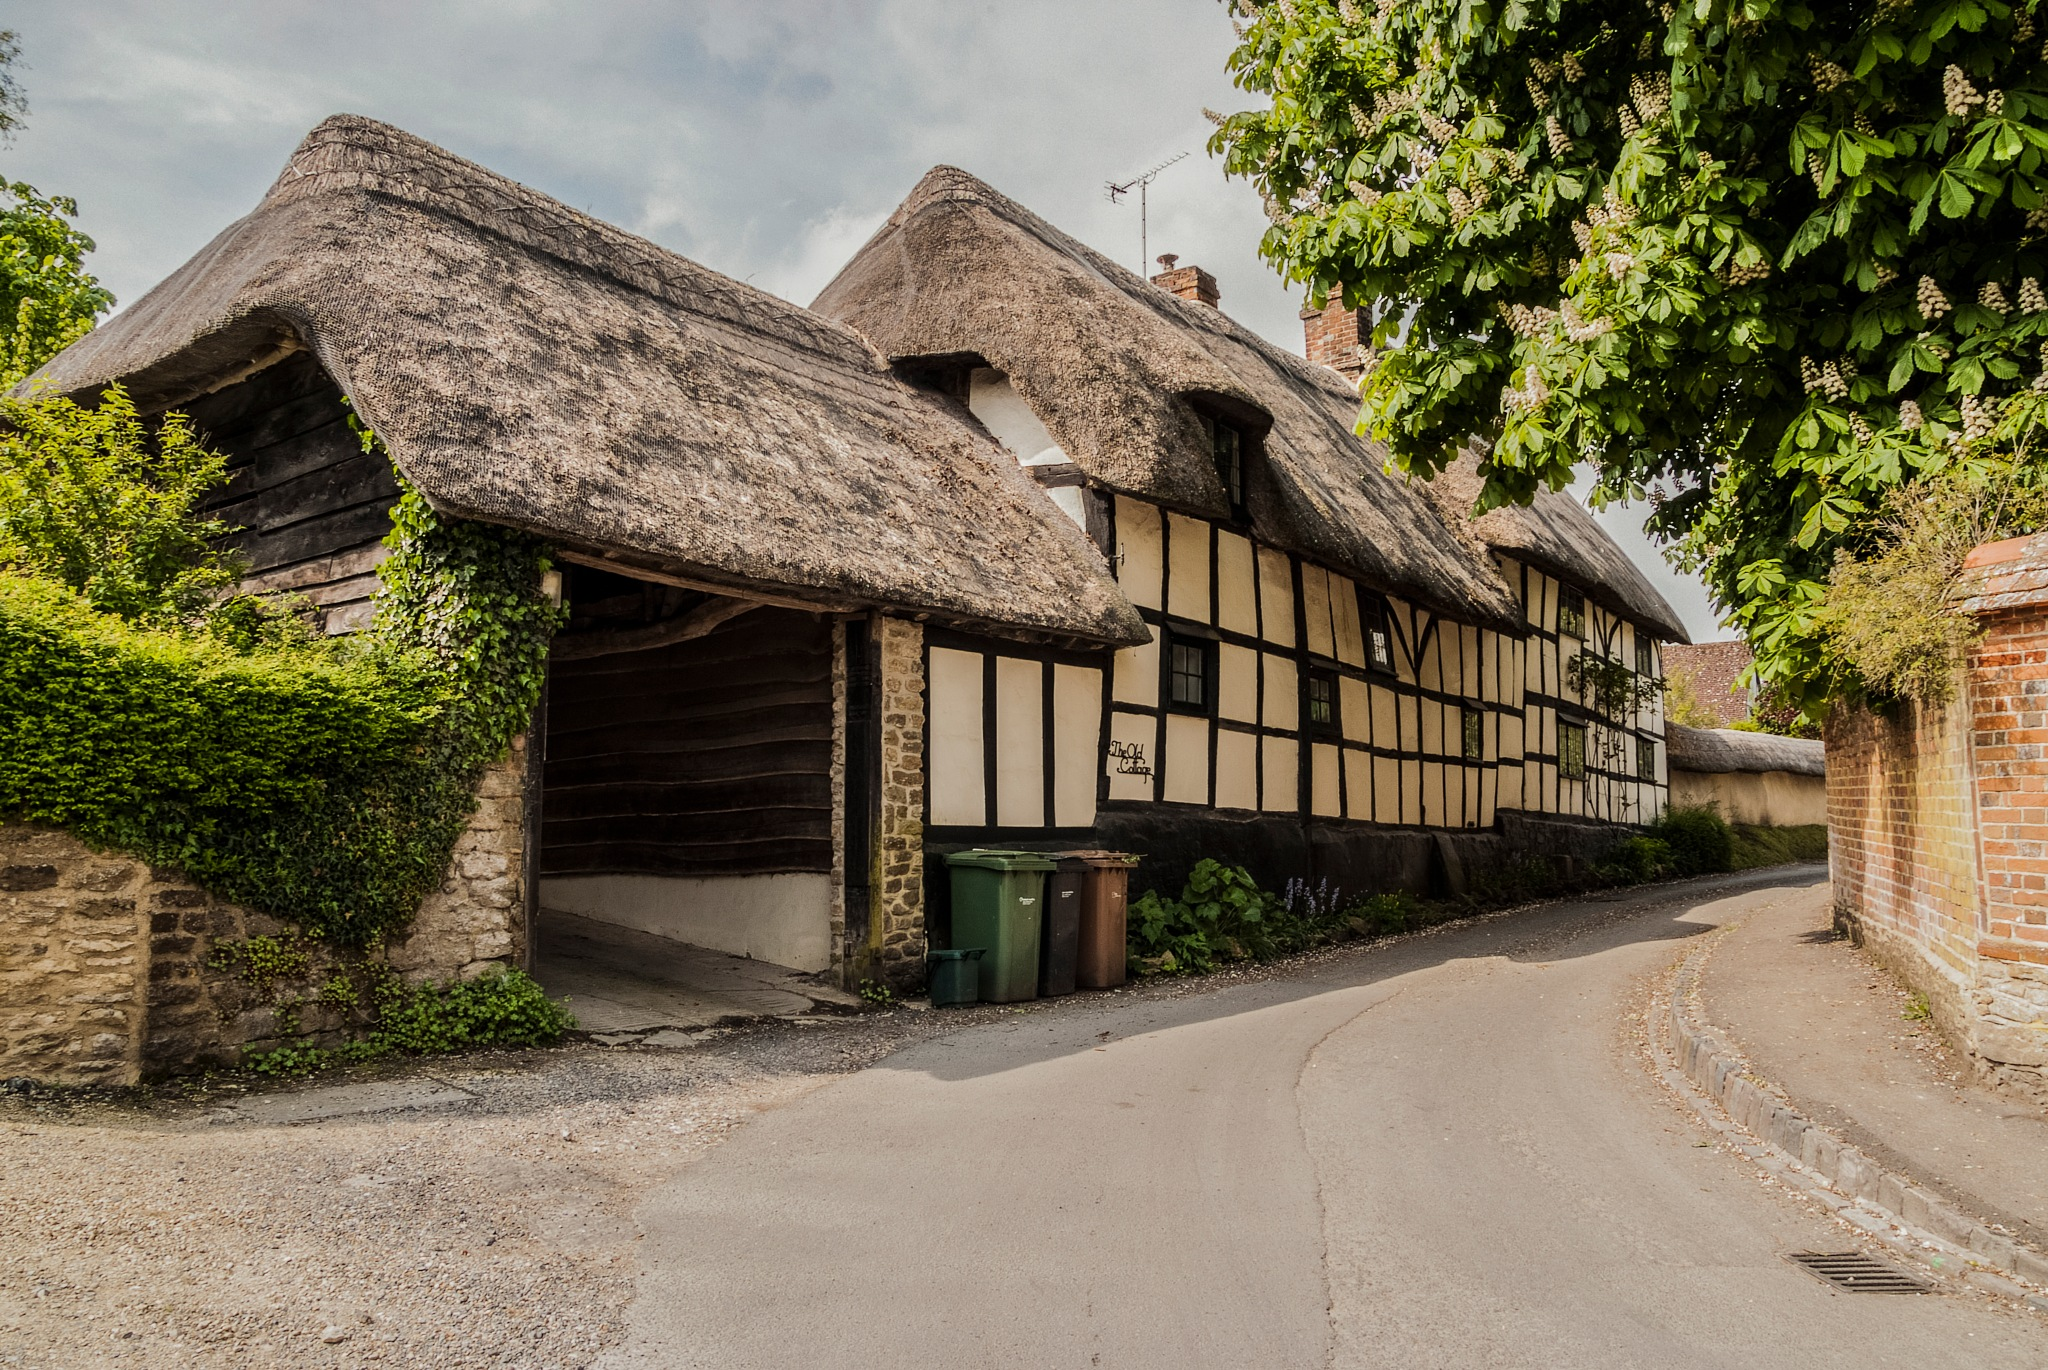 Cottages on the Berkshire Downs  by Jim Hellier